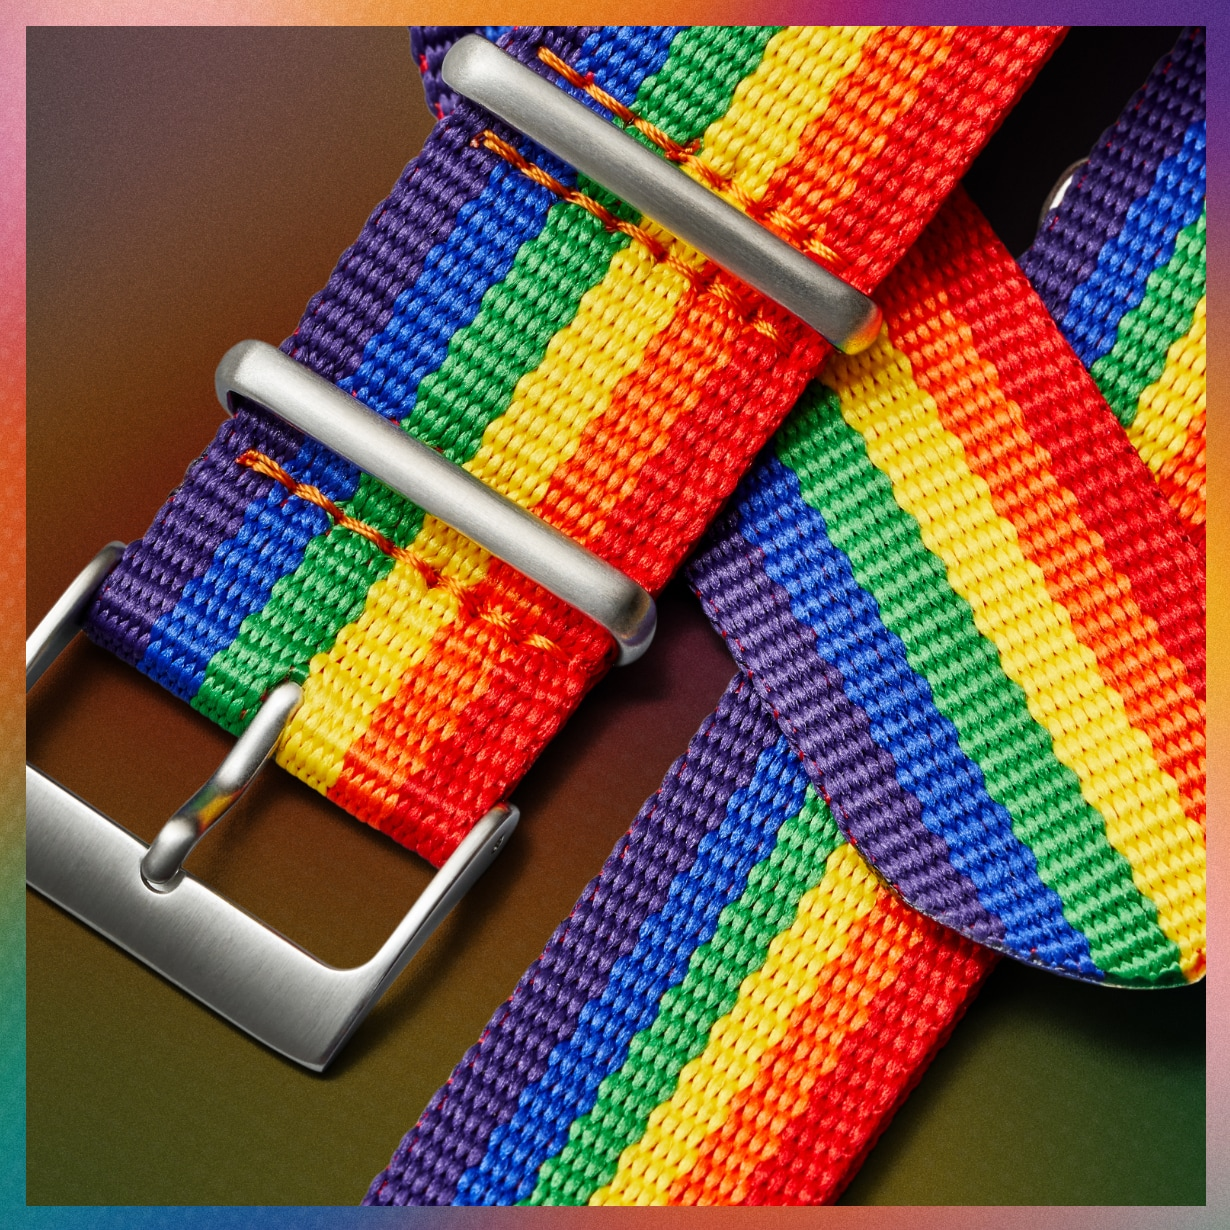 Interchangeable rainbow watch straps.